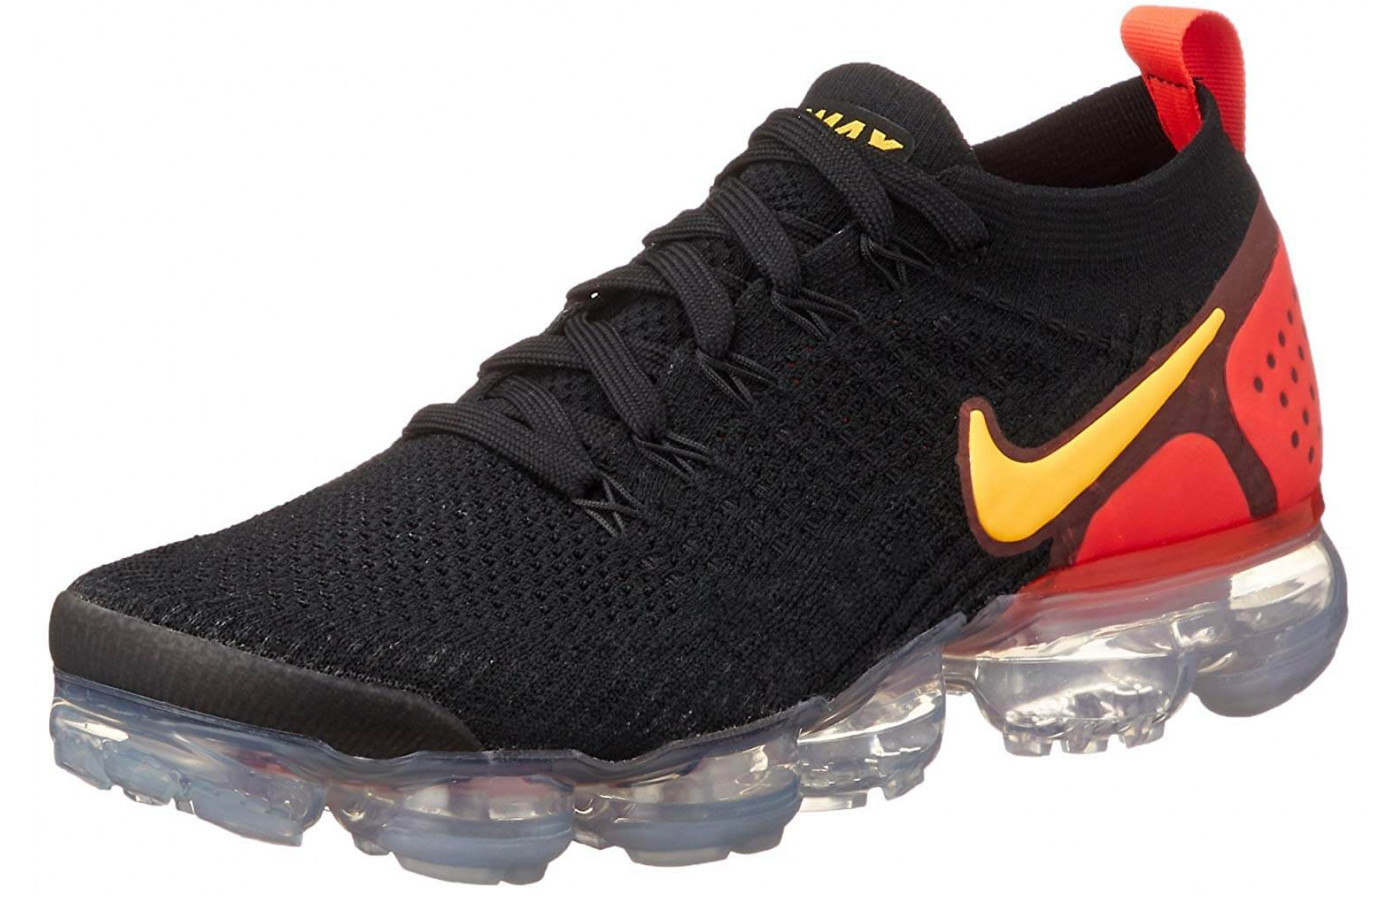 383430a05c60 Nike Air VaporMax Flyknit 2 - To Buy or Not in May 2019